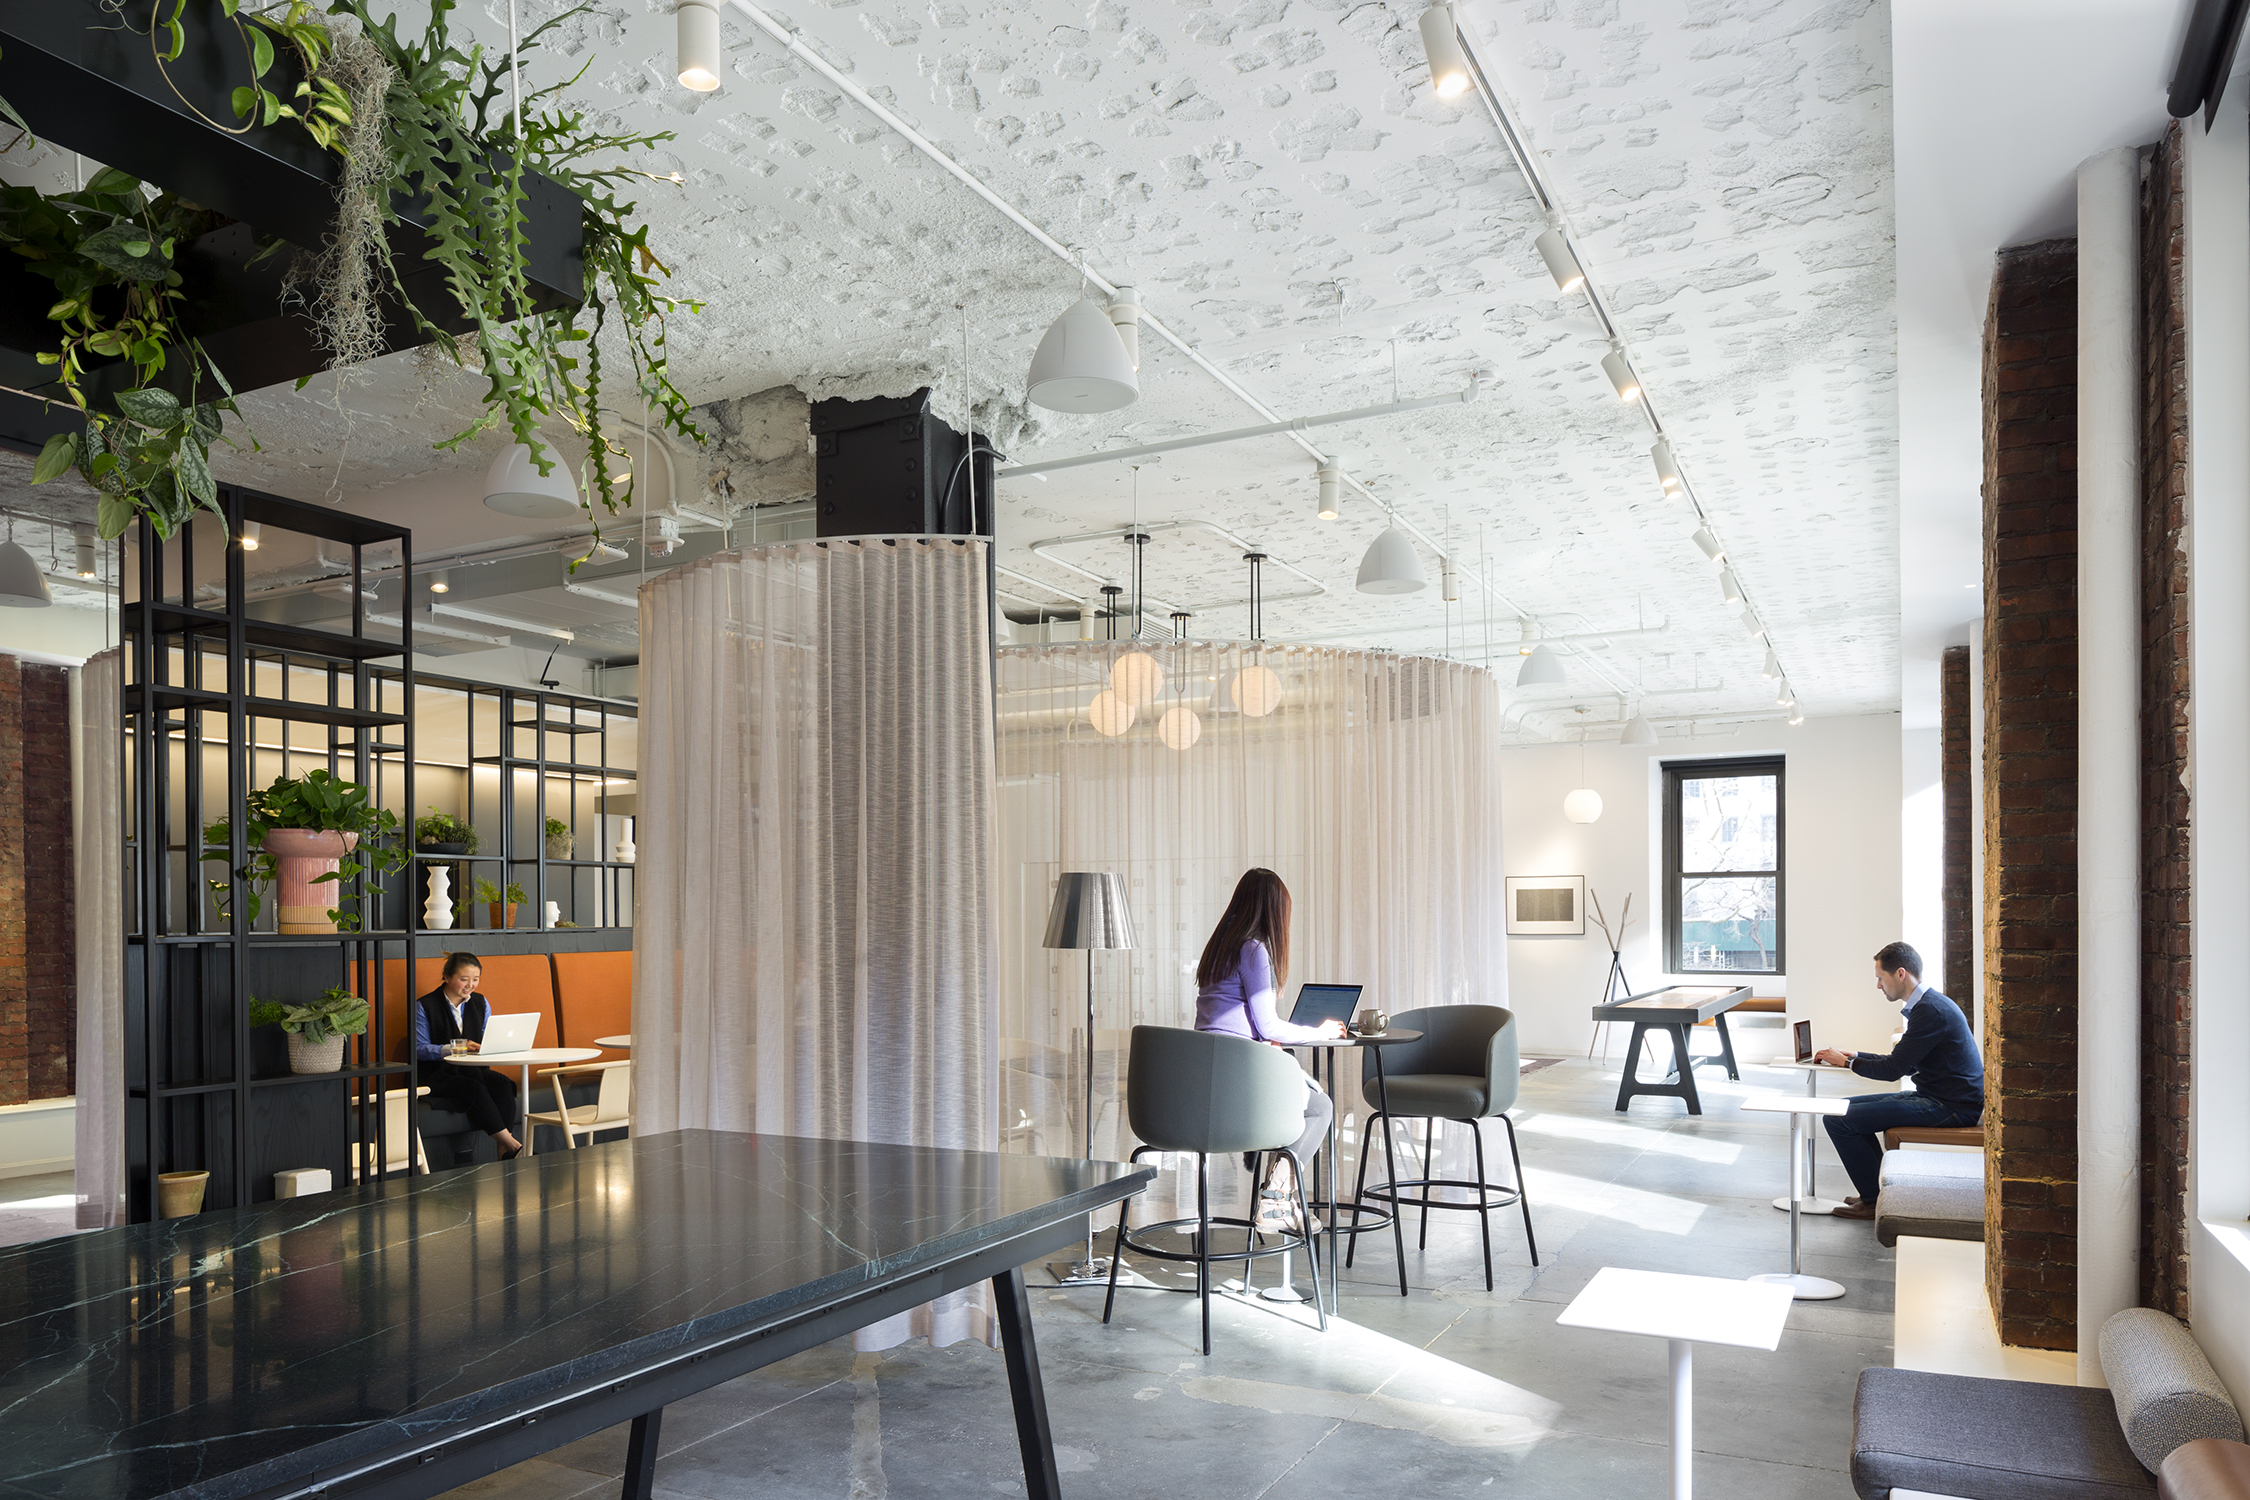 Convene uses landlord partnership model to outclass WeWork Convene at 101 Greenwich Street NYC